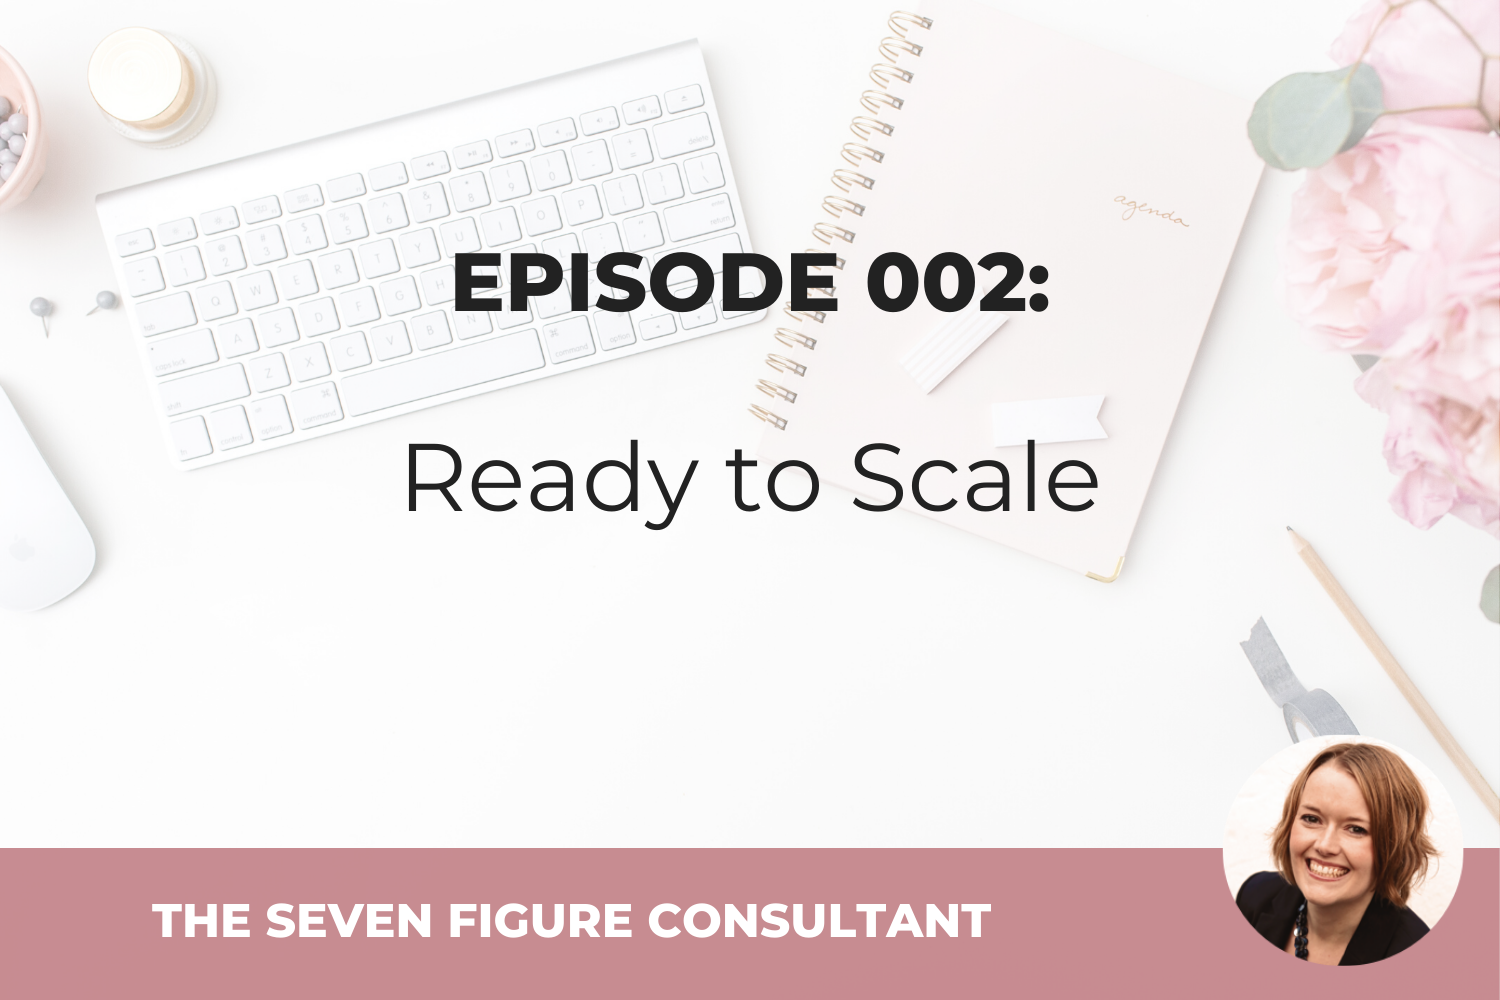 Episode 002: Ready to Scale